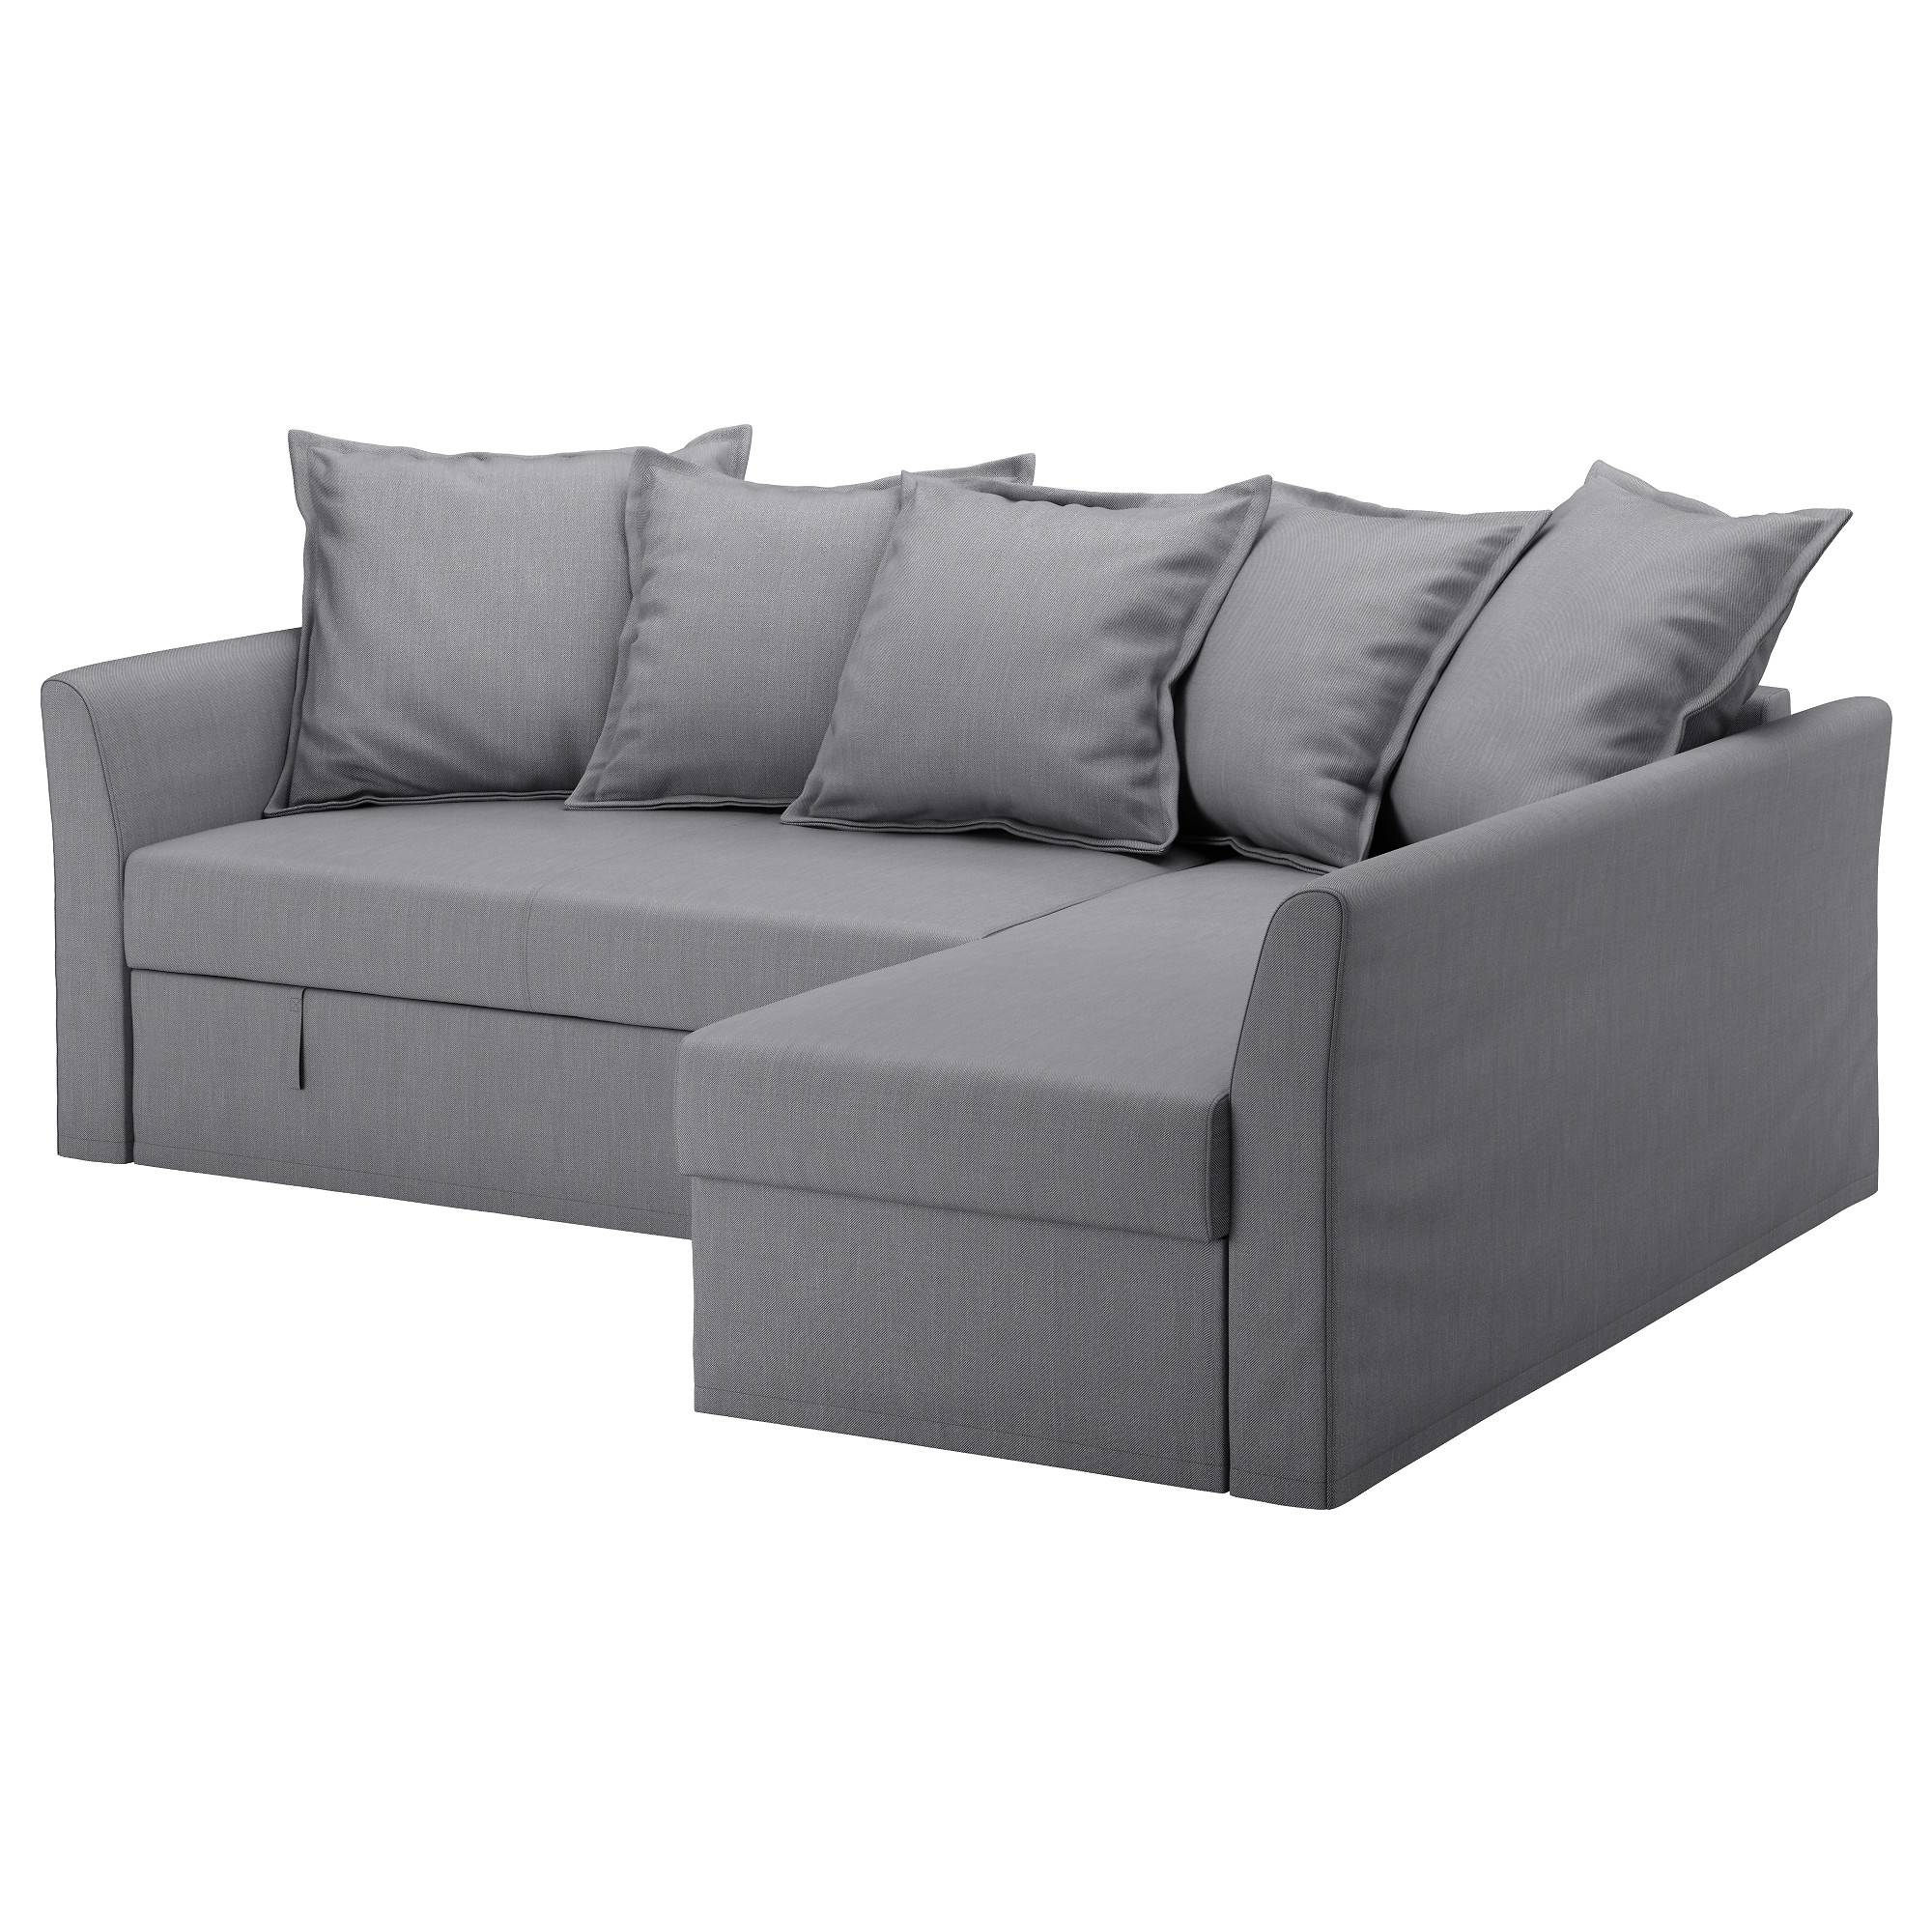 Holmsund Corner Sofa-Bed Nordvalla Medium Grey - Ikea with regard to Corner Couch Bed (Image 21 of 30)